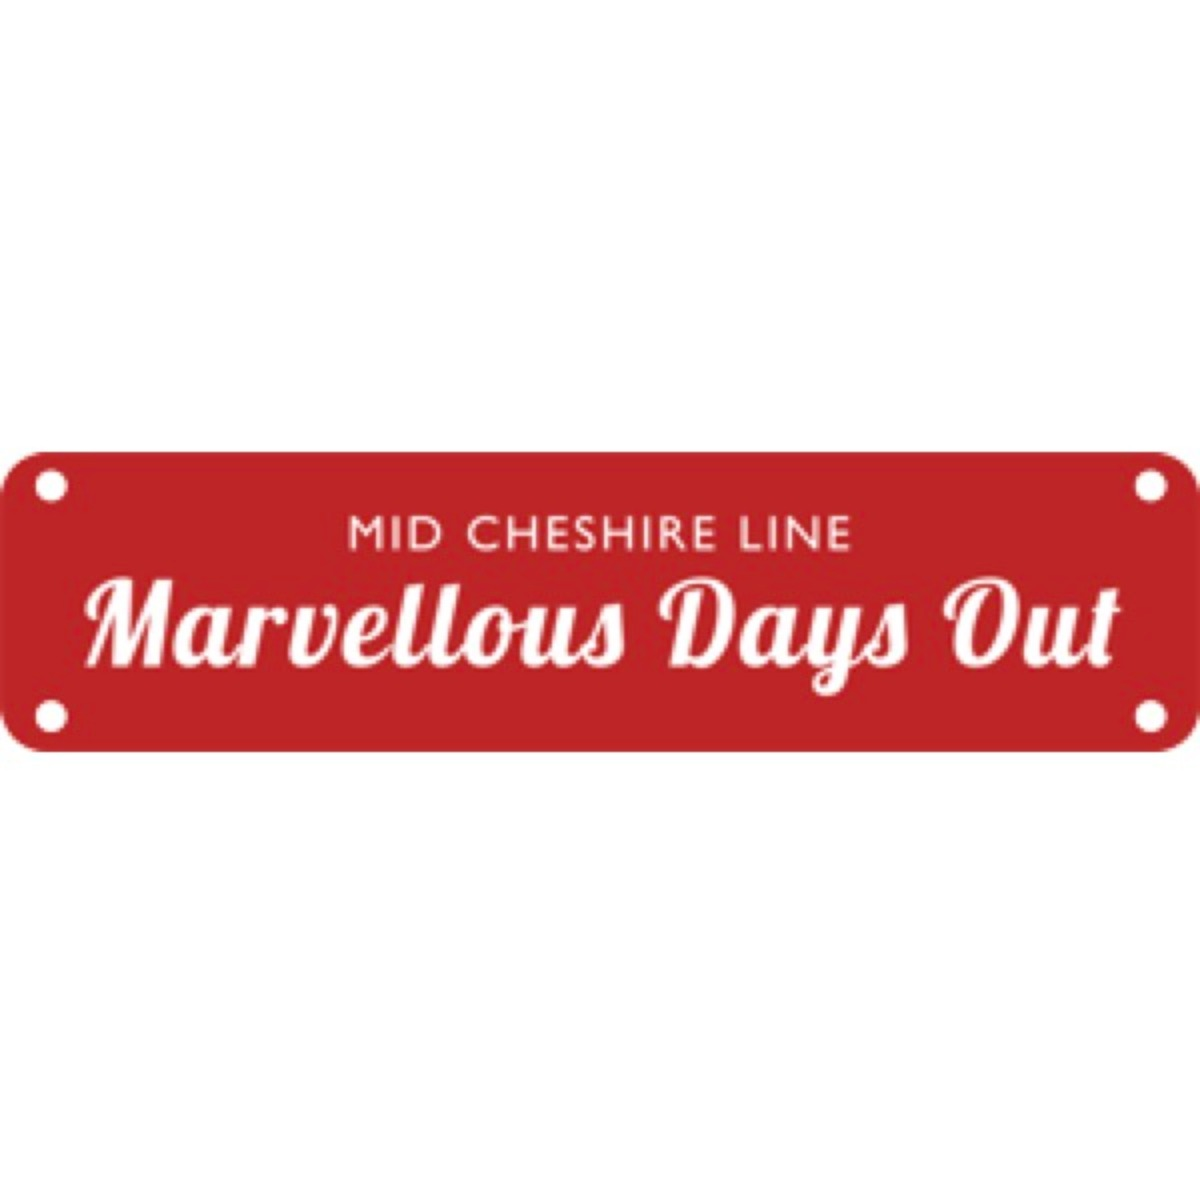 Marvellous Days Out